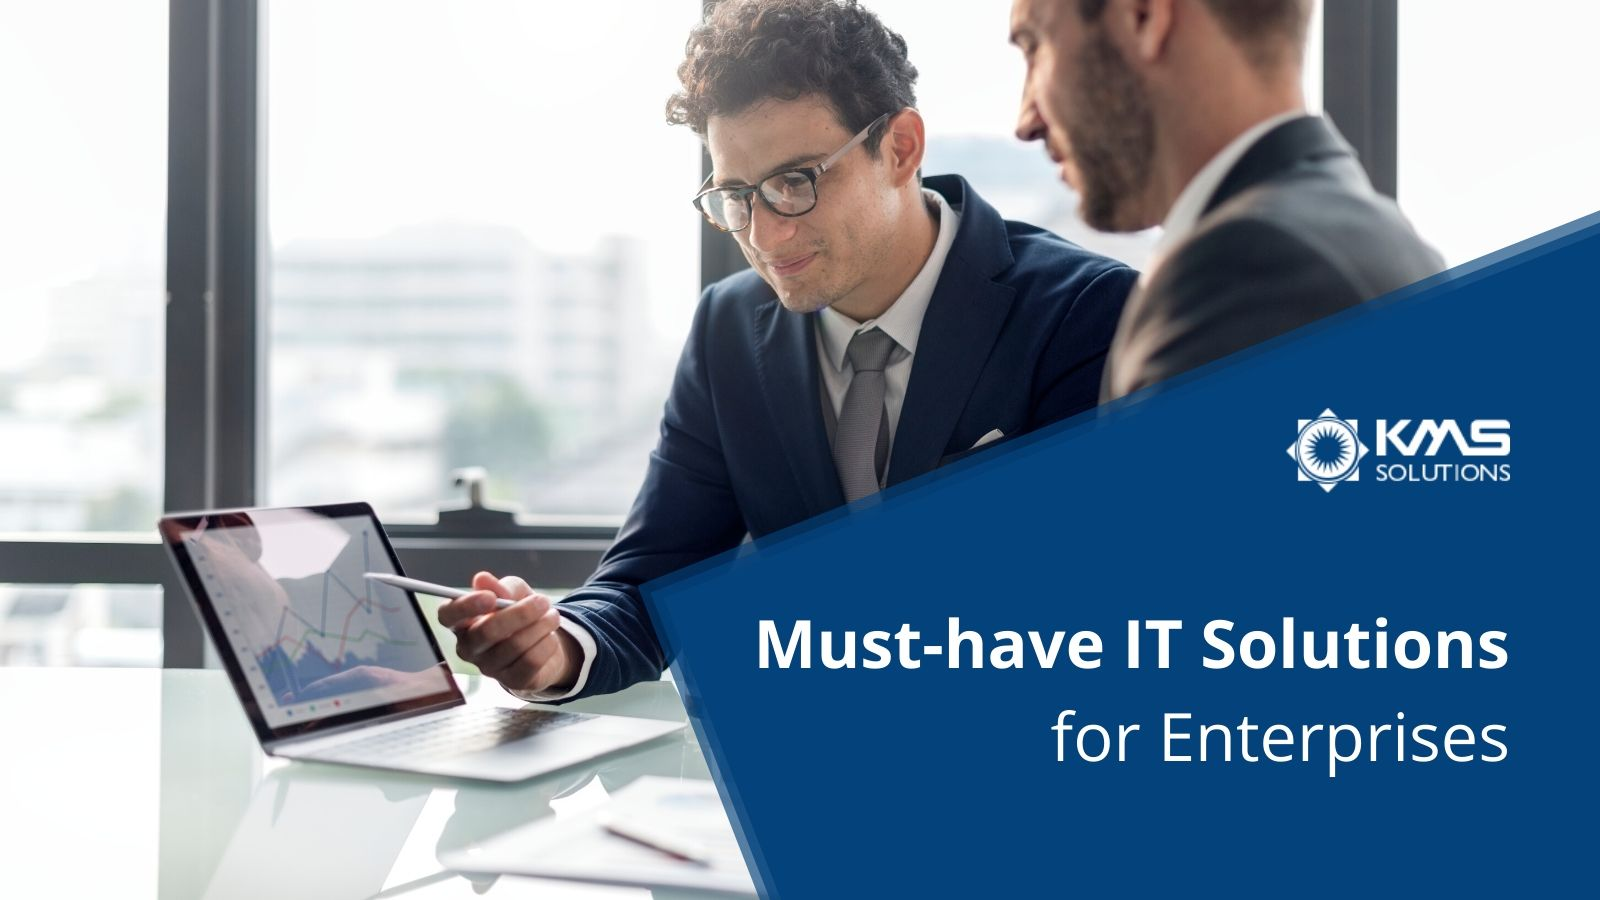 Must-have IT Solutions for Enterprises